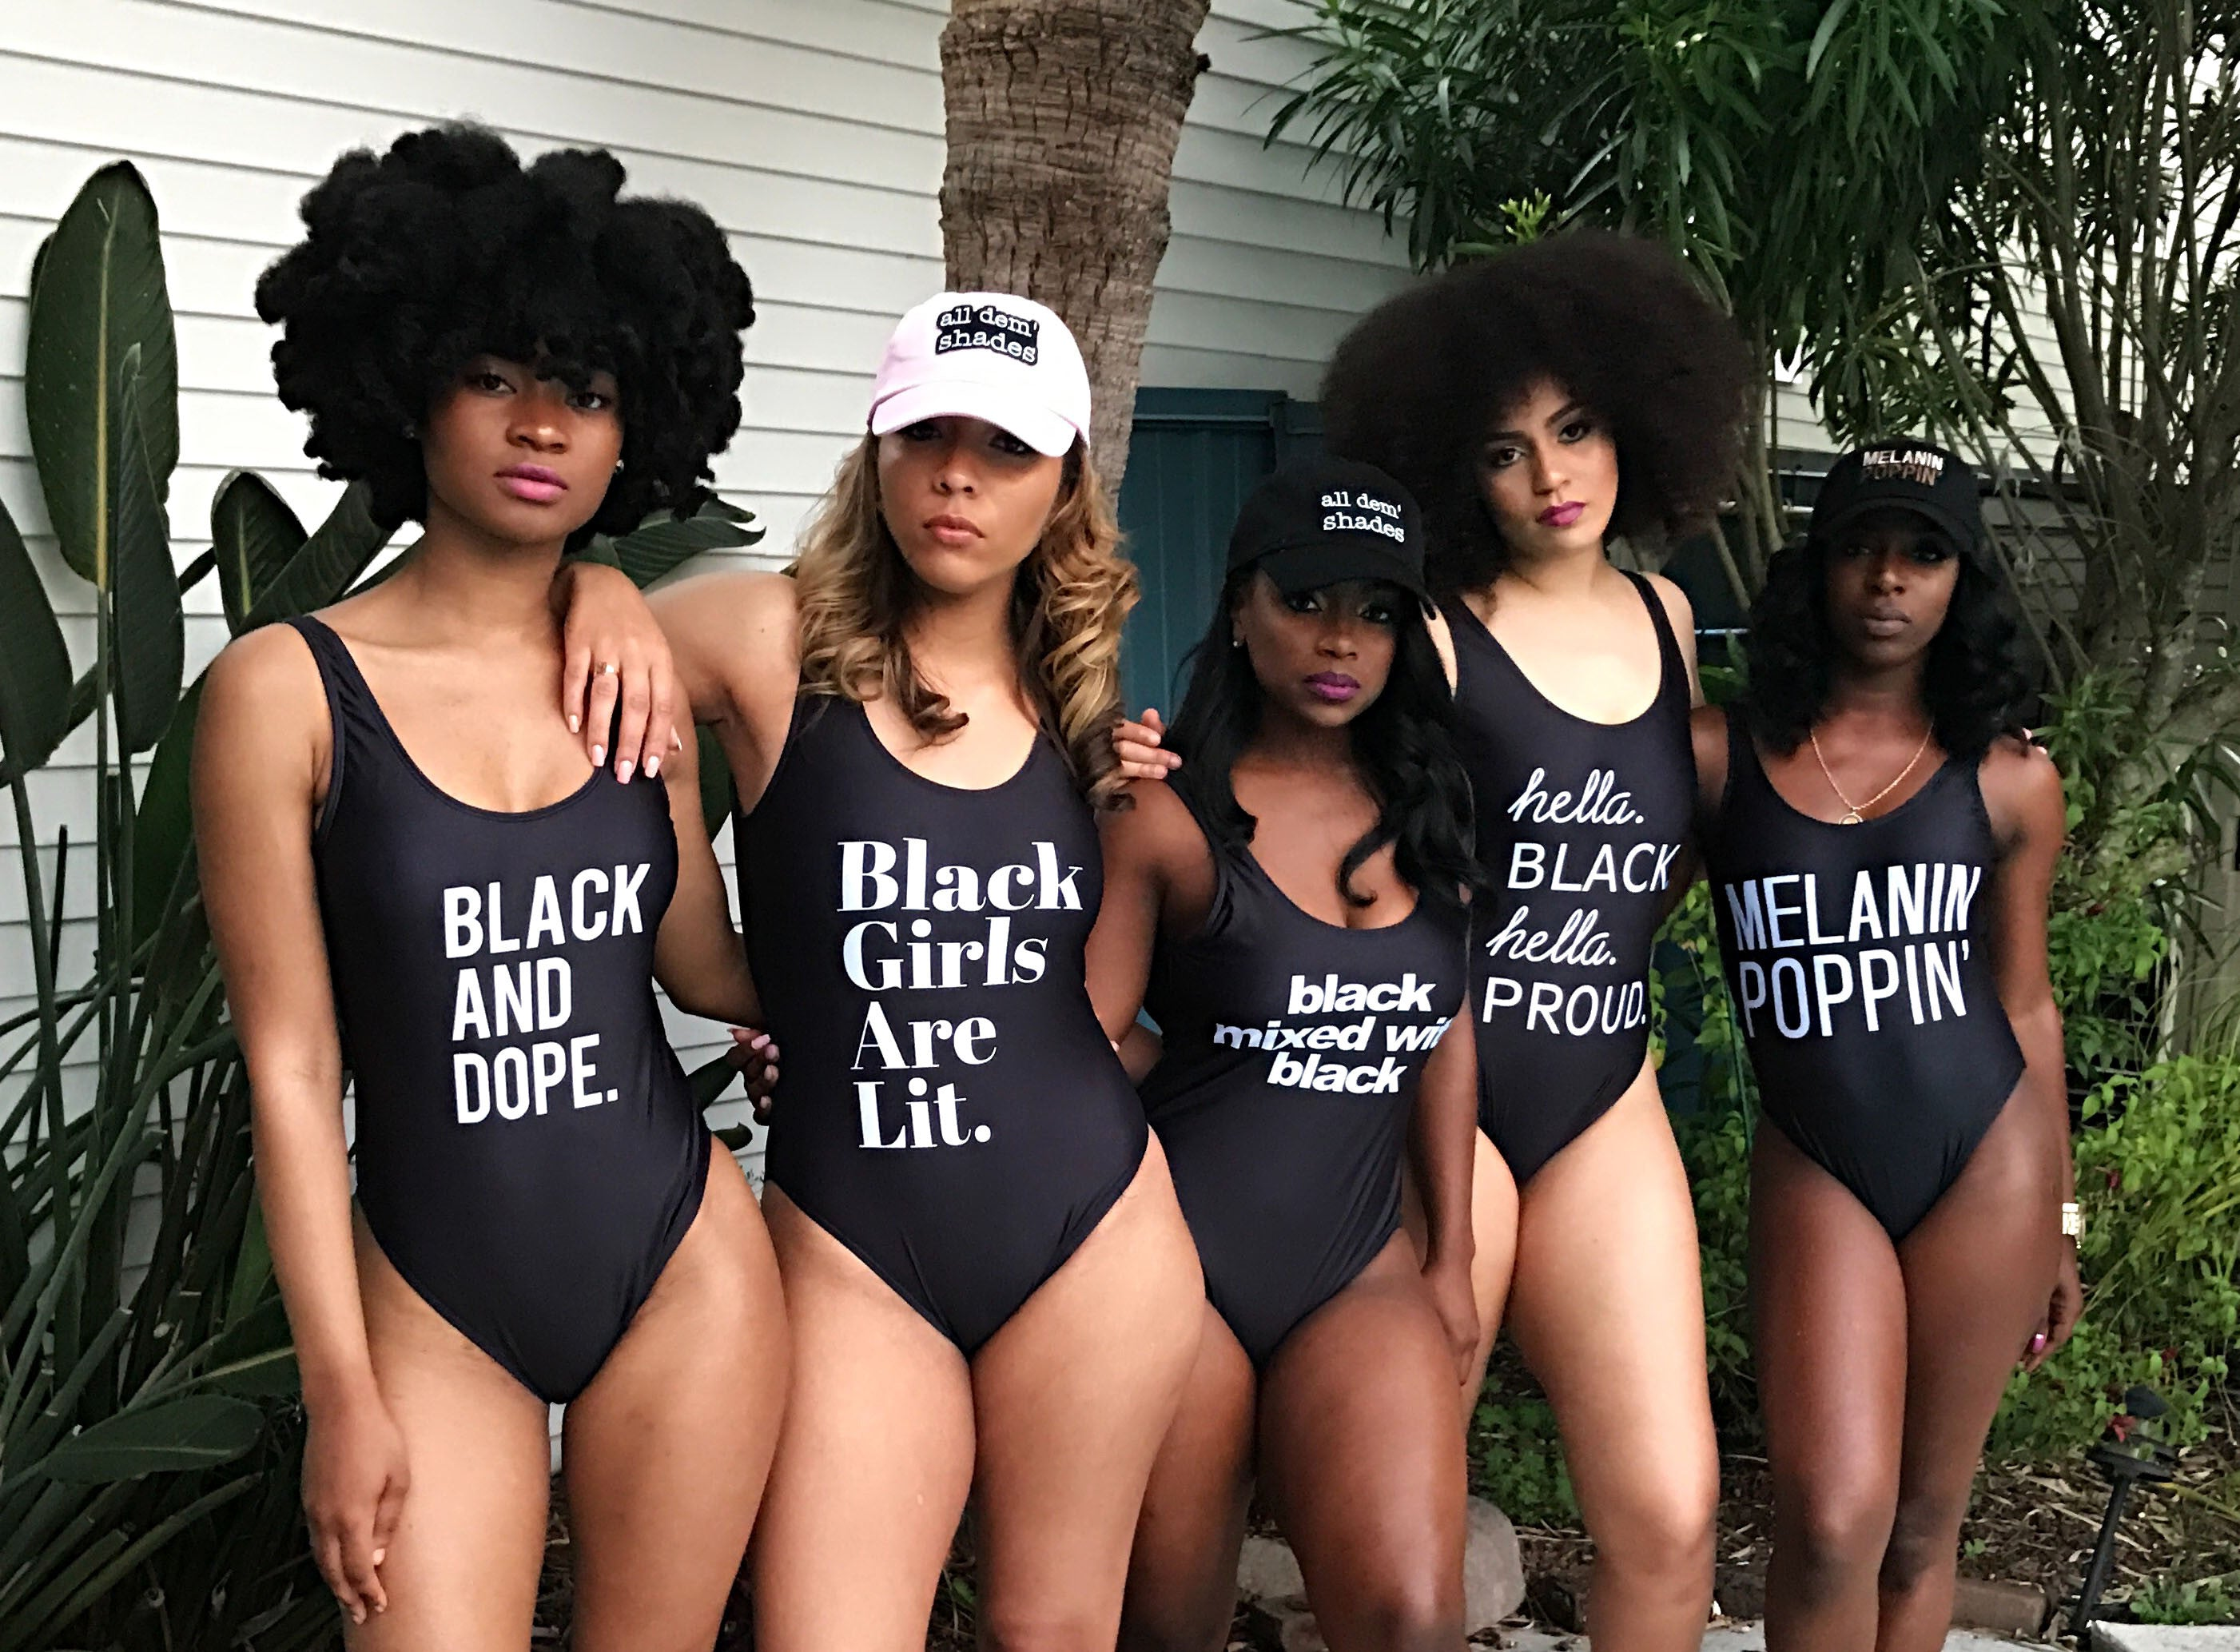 ADS Signature Swimsuit - Black Girls Are Lit